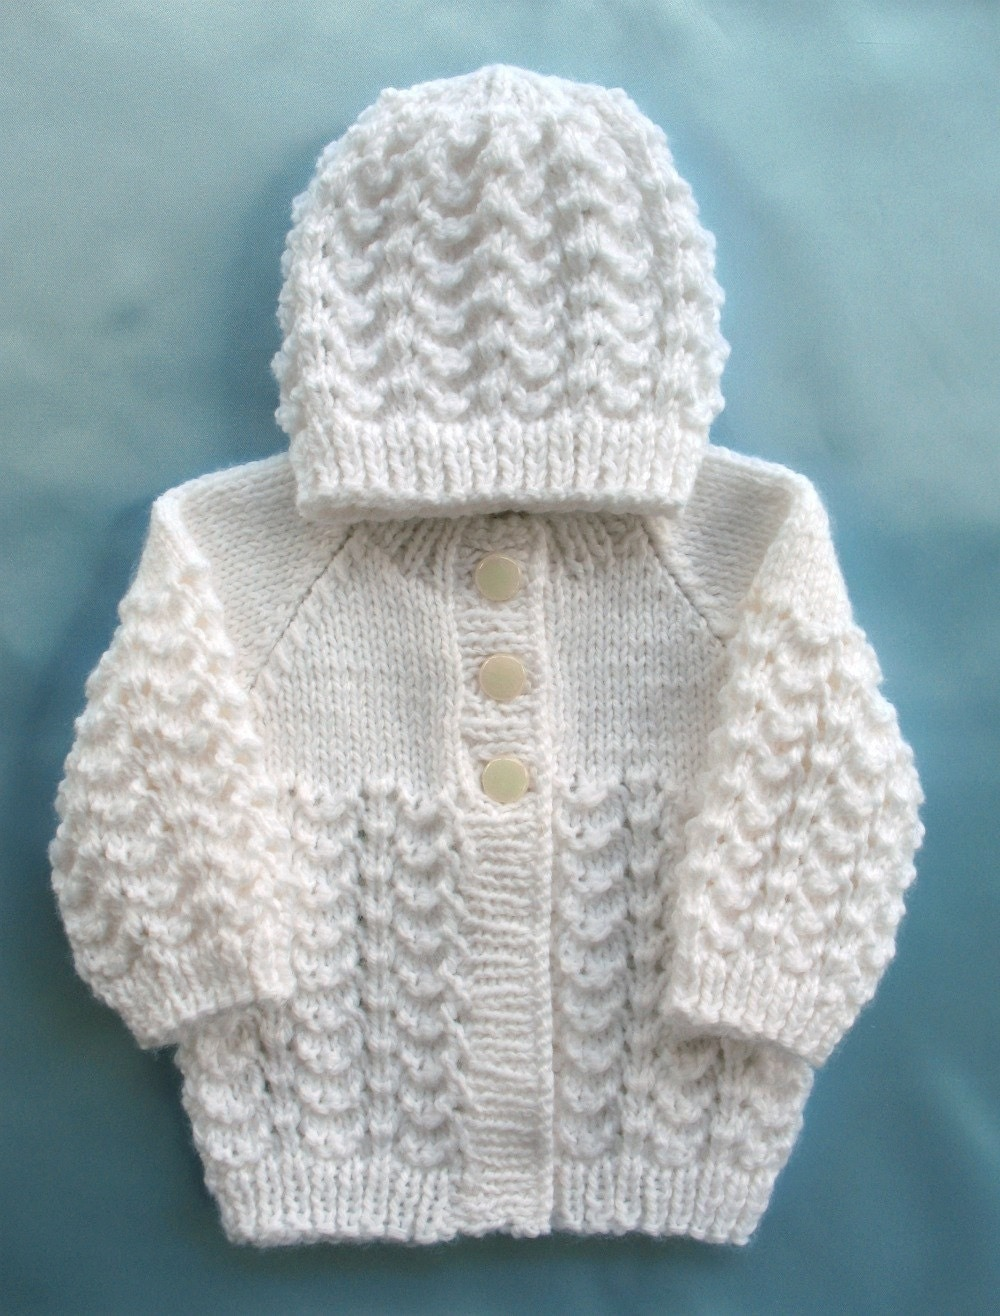 Free Baby Sweater Knitting Patterns. Knit a cozy sweater for a new baby! We have an adorable range of free baby sweater patterns to choose from to suit every knitting ability, from simple stitches for beginners to complex cables, Fair Isle and intarsia!94%(K).